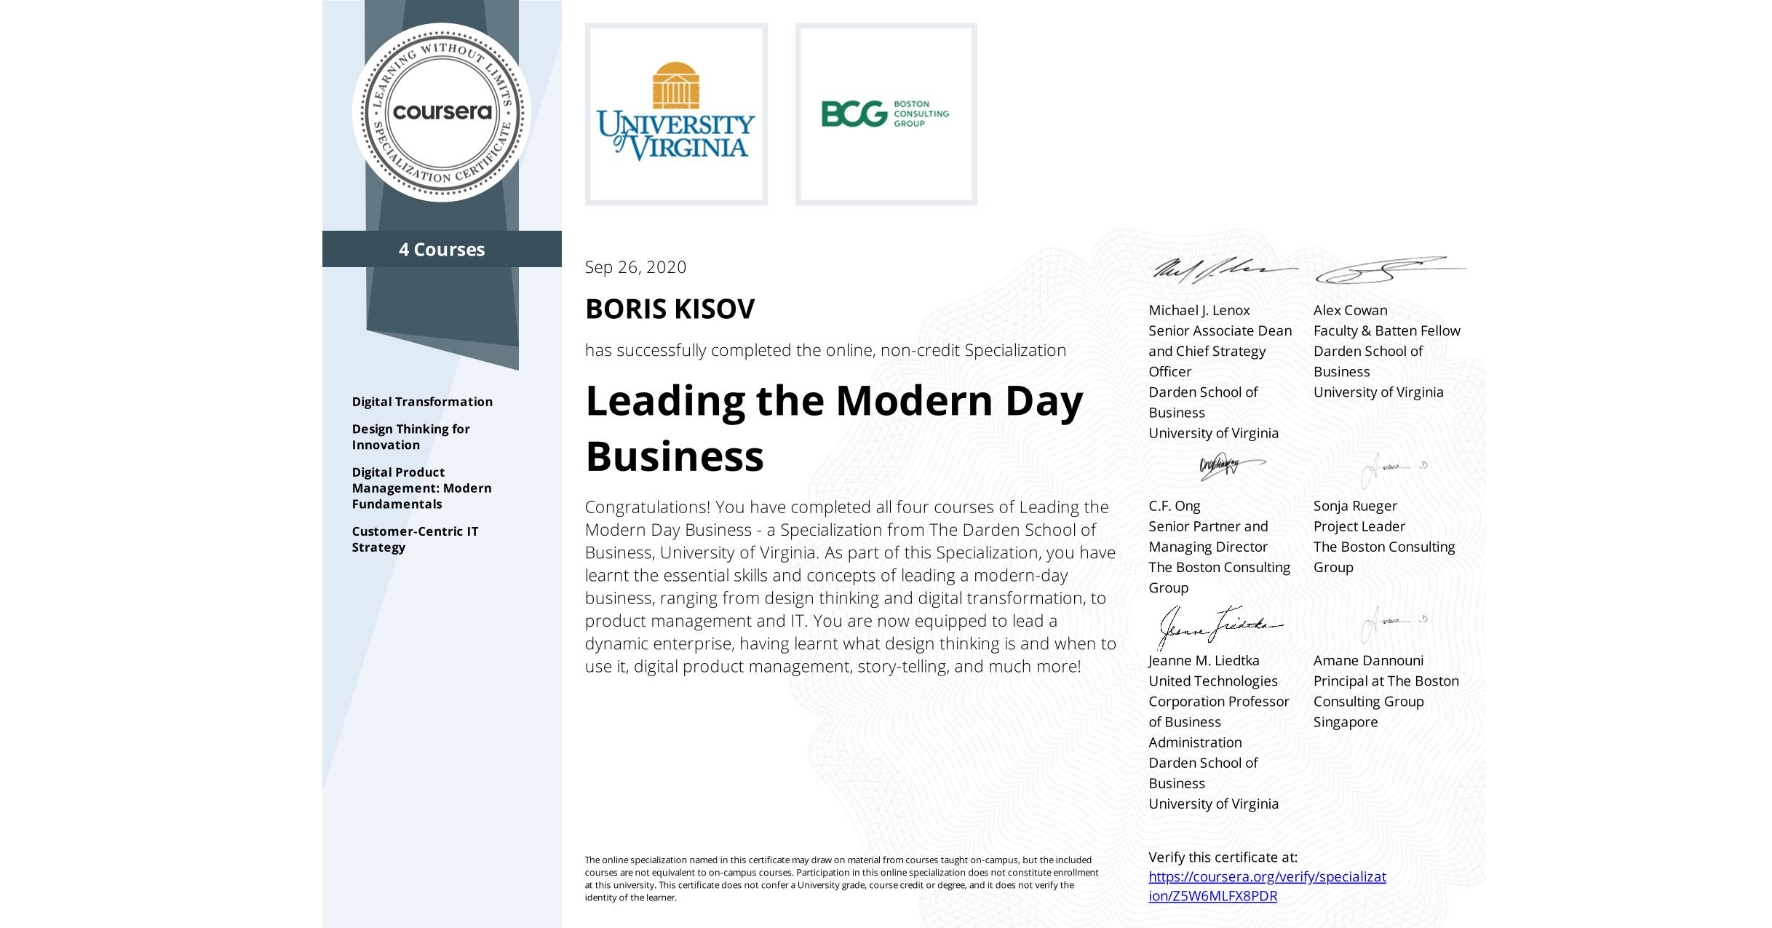 View certificate for BORIS KISOV, Leading the Modern Day Business, offered through Coursera. Congratulations! You have completed all four courses of Leading the Modern Day Business - a Specialization from The Darden School of Business, University of Virginia. As part of this Specialization, you have learnt the essential skills and concepts of leading a modern-day business, ranging from design thinking and digital transformation, to product management and IT.  You are now equipped to lead a dynamic enterprise, having learnt what design thinking is and when to use it, digital product management, story-telling, and much more!